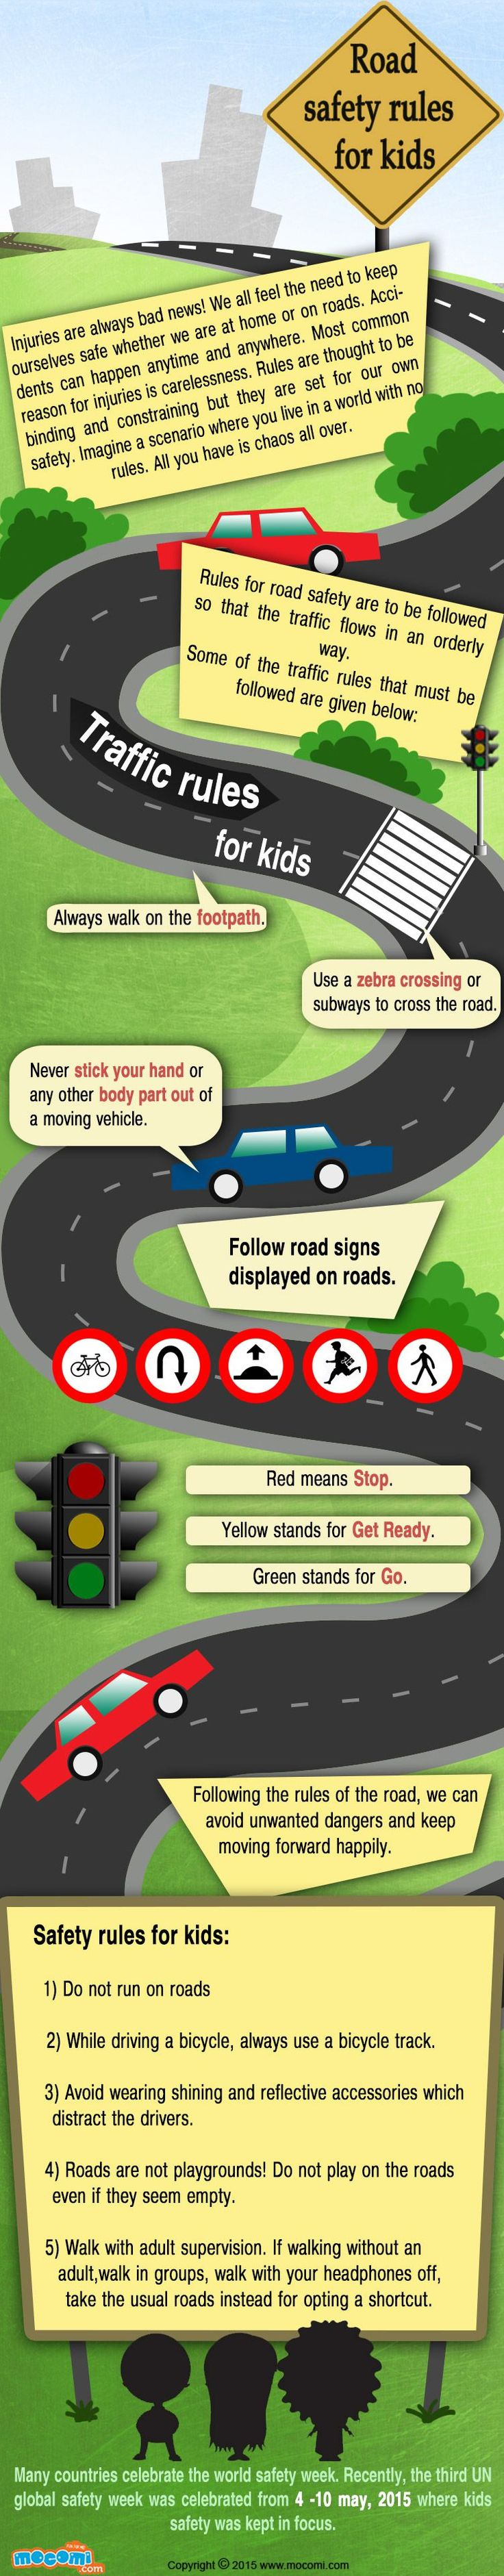 Best Safety road ideas on Pinterest